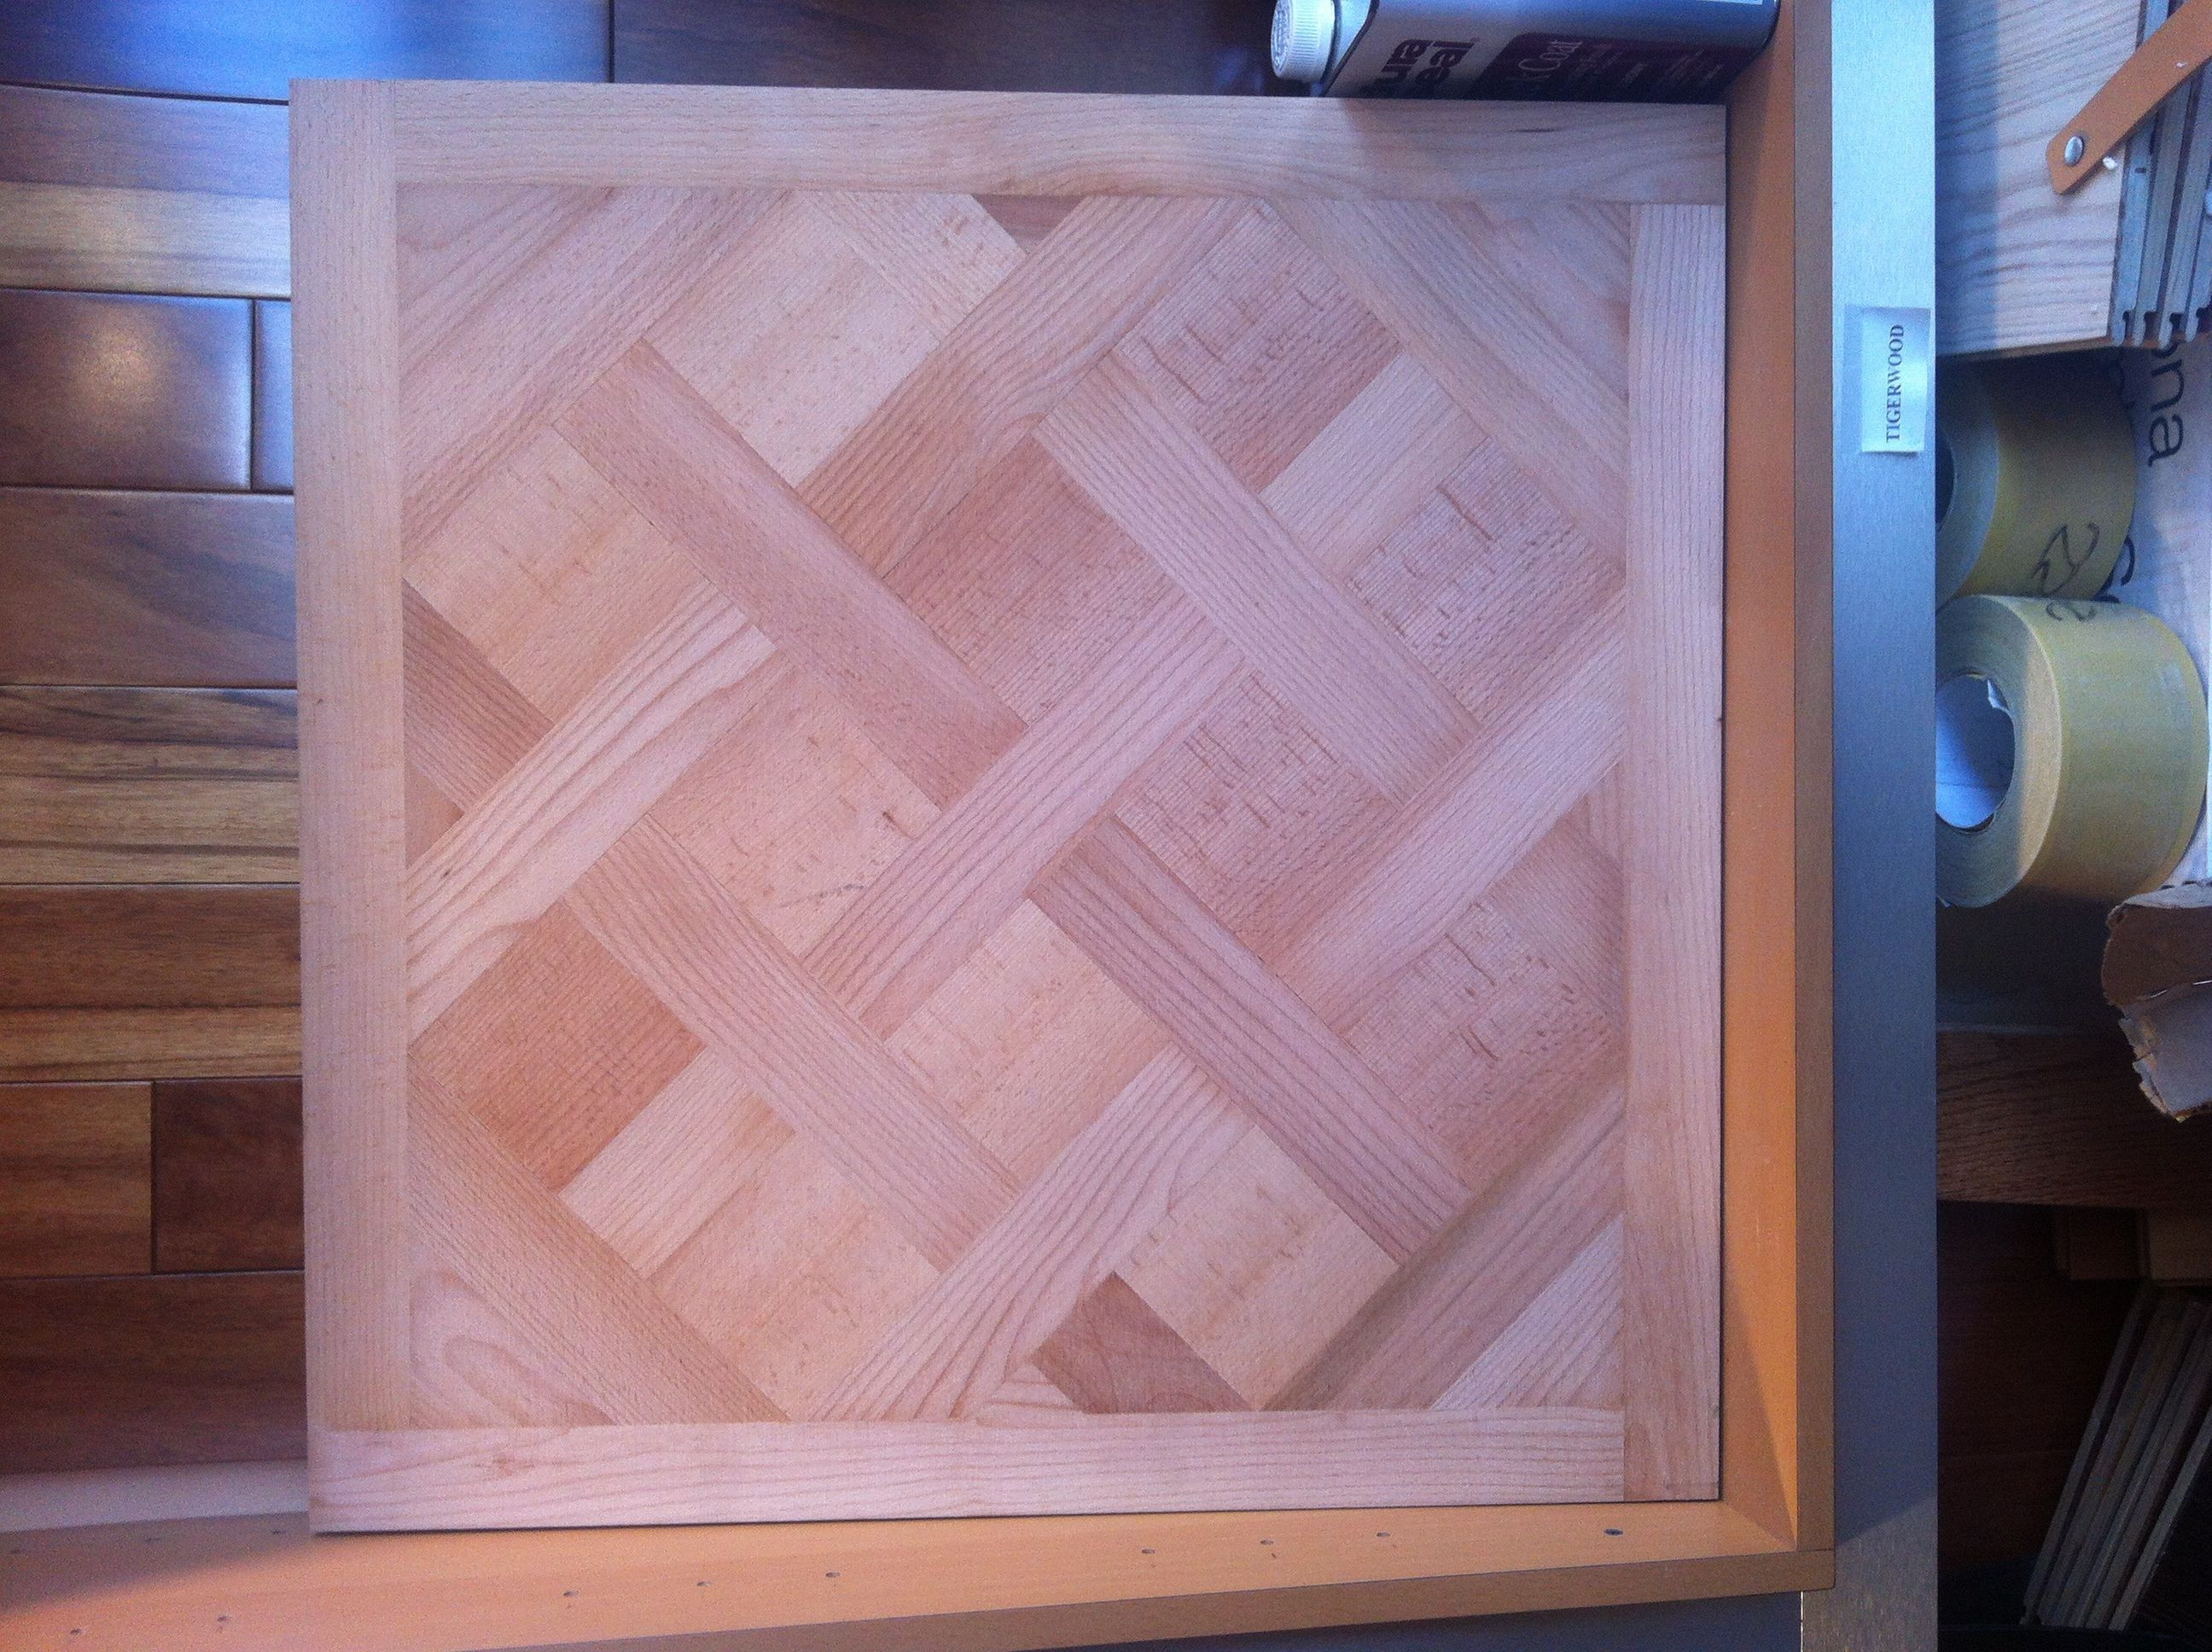 23 attractive Exotic Hardwood Flooring Prices 2021 free download exotic hardwood flooring prices of parquet floors 11024 parquet floors design 11024 parquet floors with regard to custom parquet floor designs in 11024 kingspoint new york find the most exot